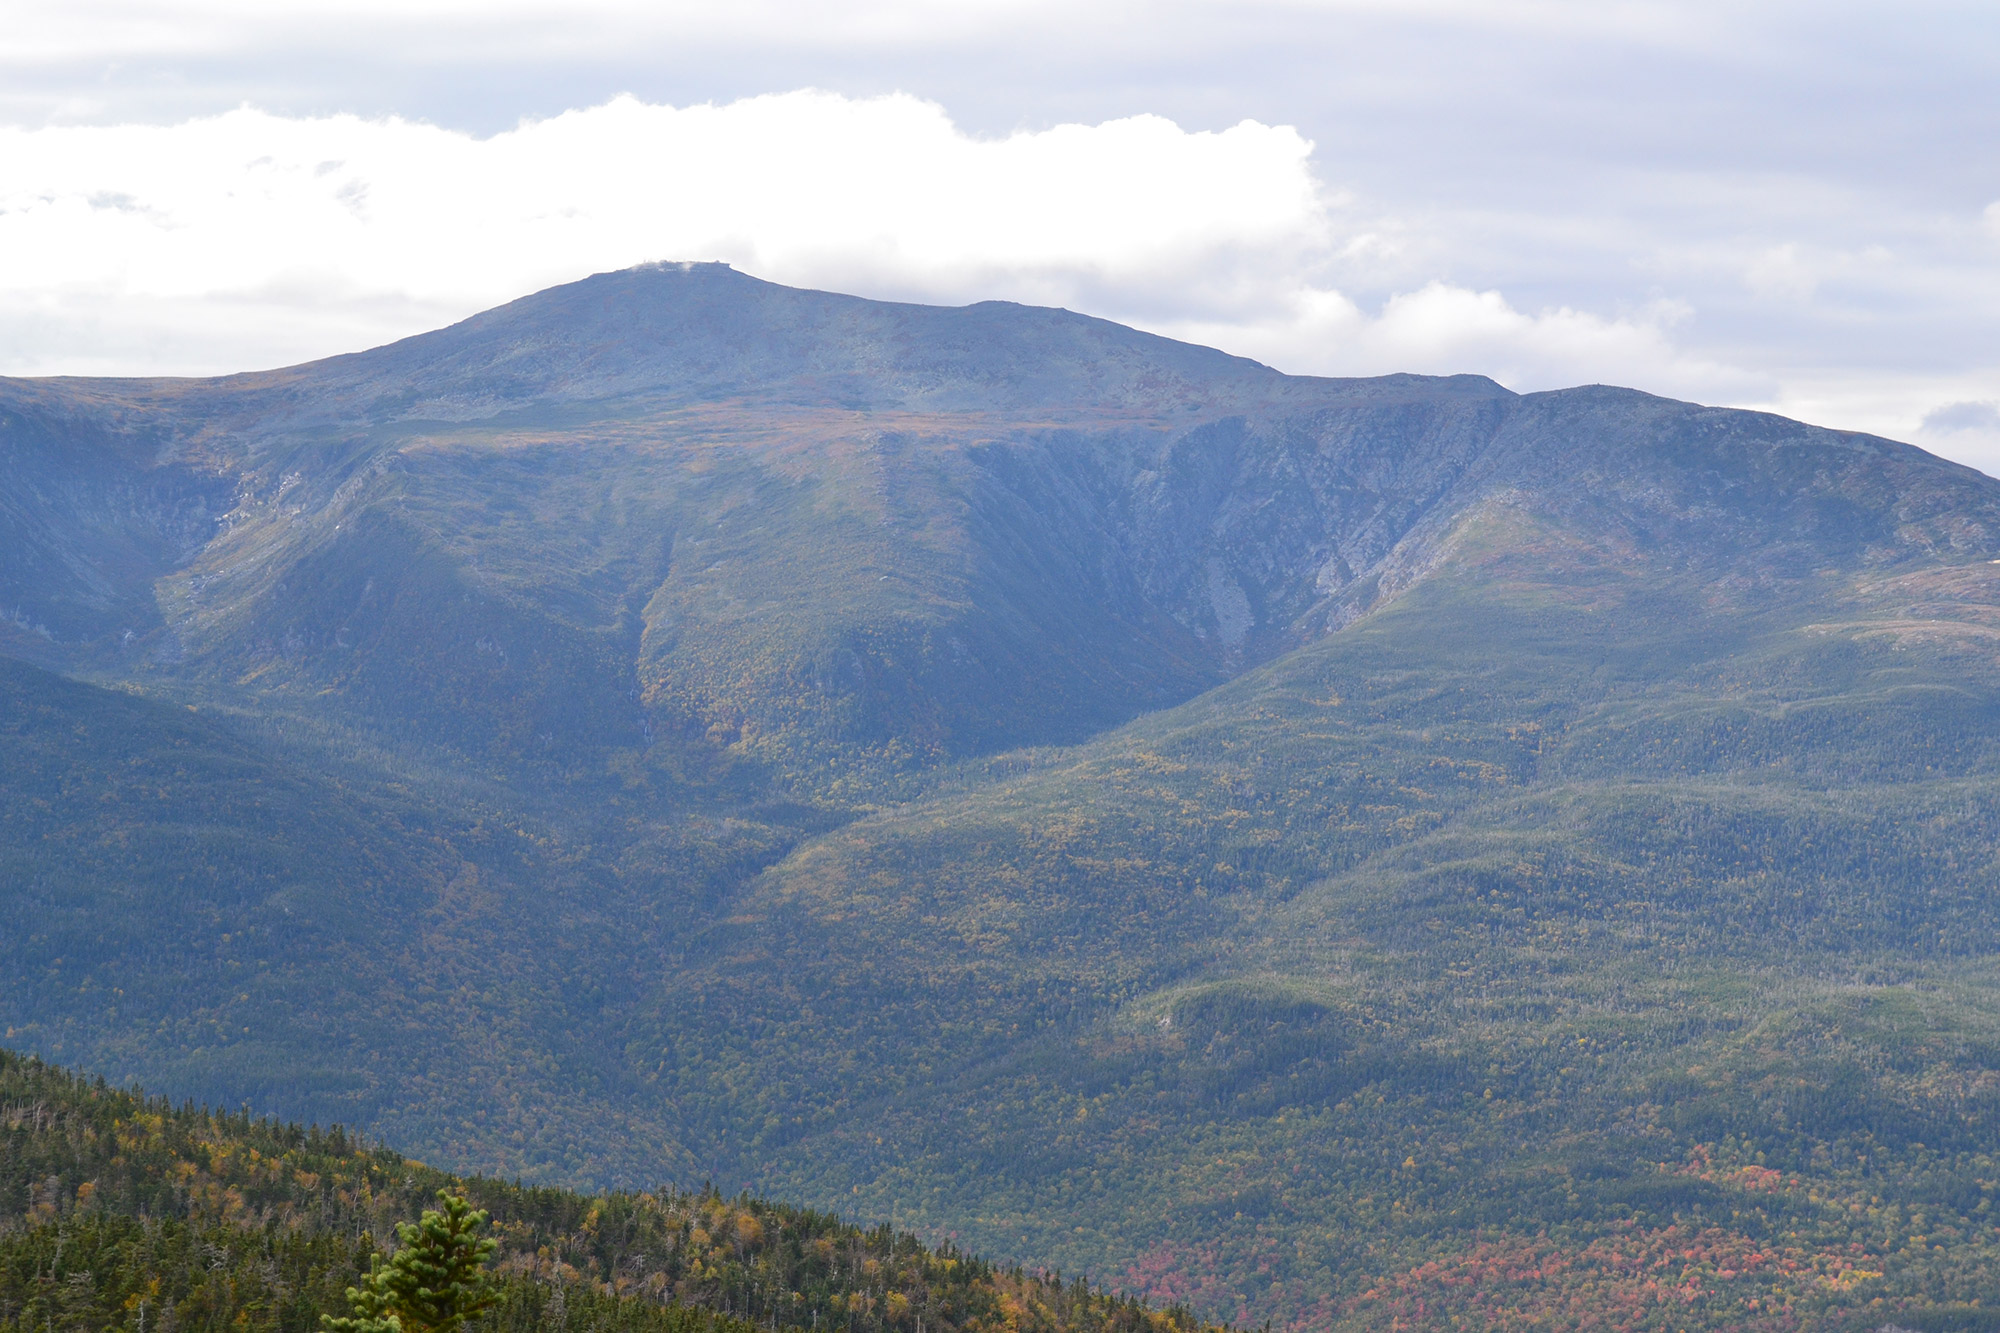 Mount Washington with Tuckerman (left) and Huntington (right) Ravines from below Wildcat C. | Credit: Douglas Martland